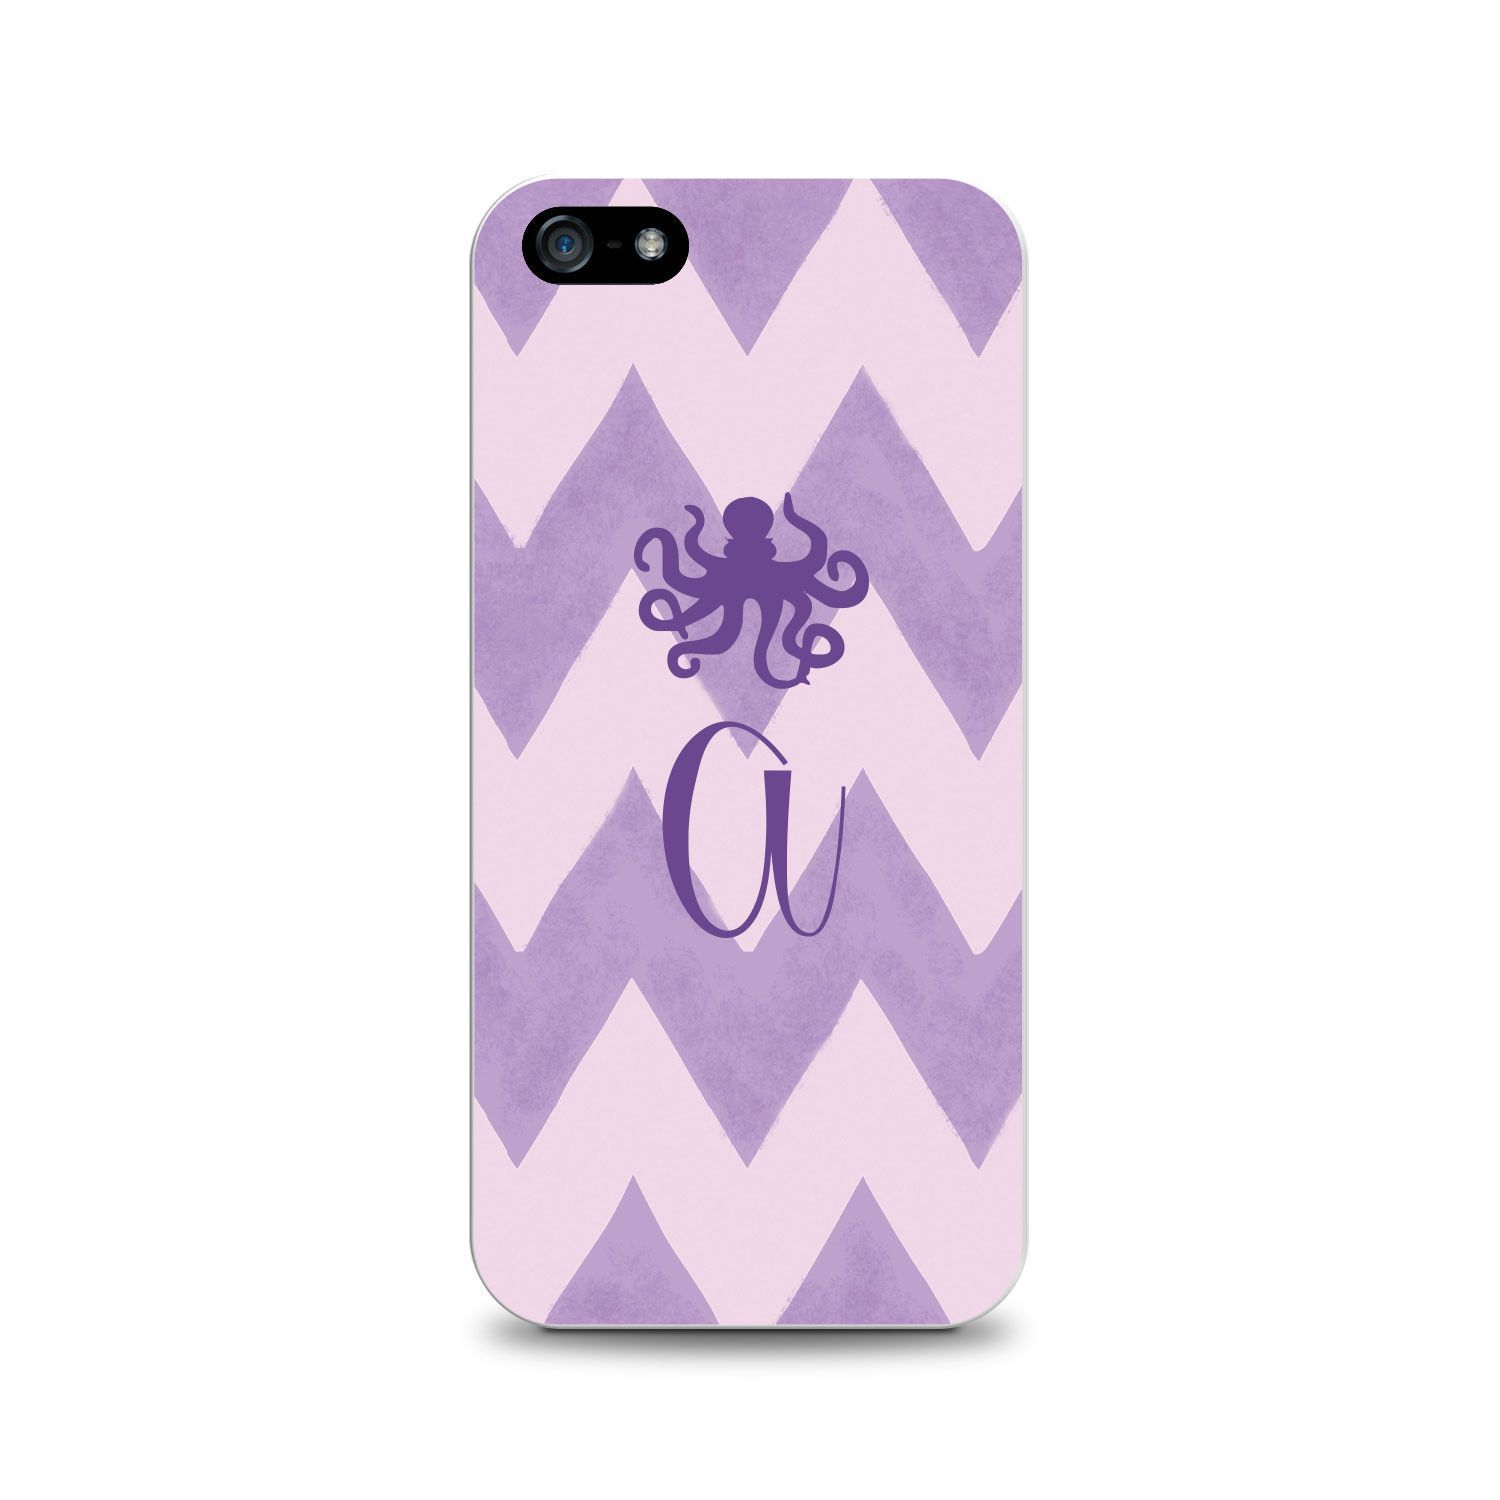 OTM Critter Collection iPhone 5 Case, ZIG/ZAG, Purple Octopus- A